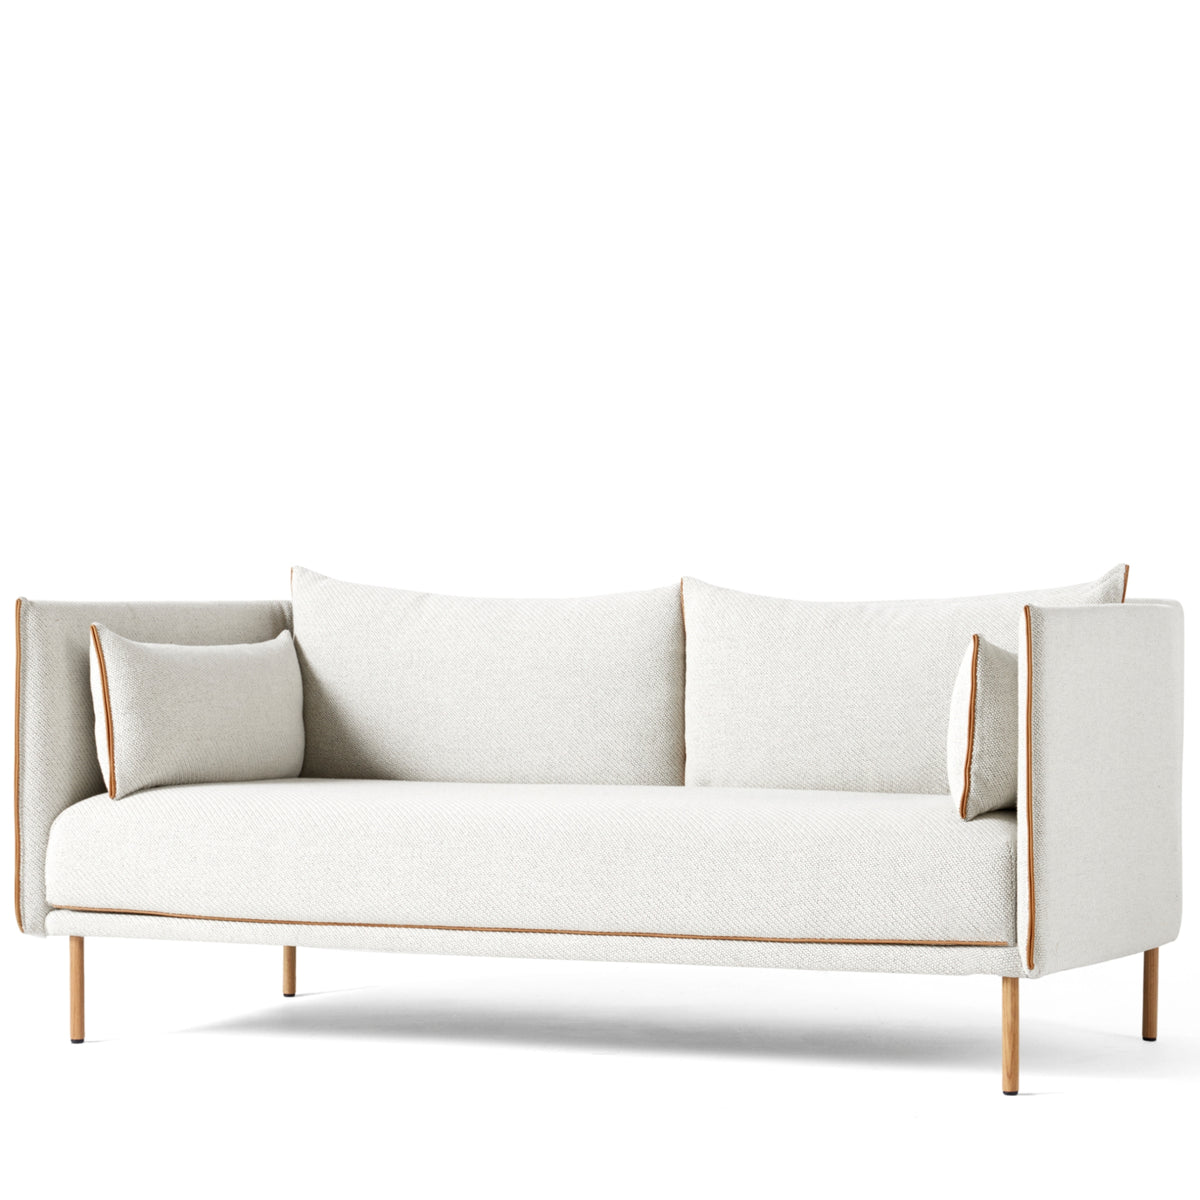 HAY Office Silhouette Sofa 2 Seater - Oak Leg Coda